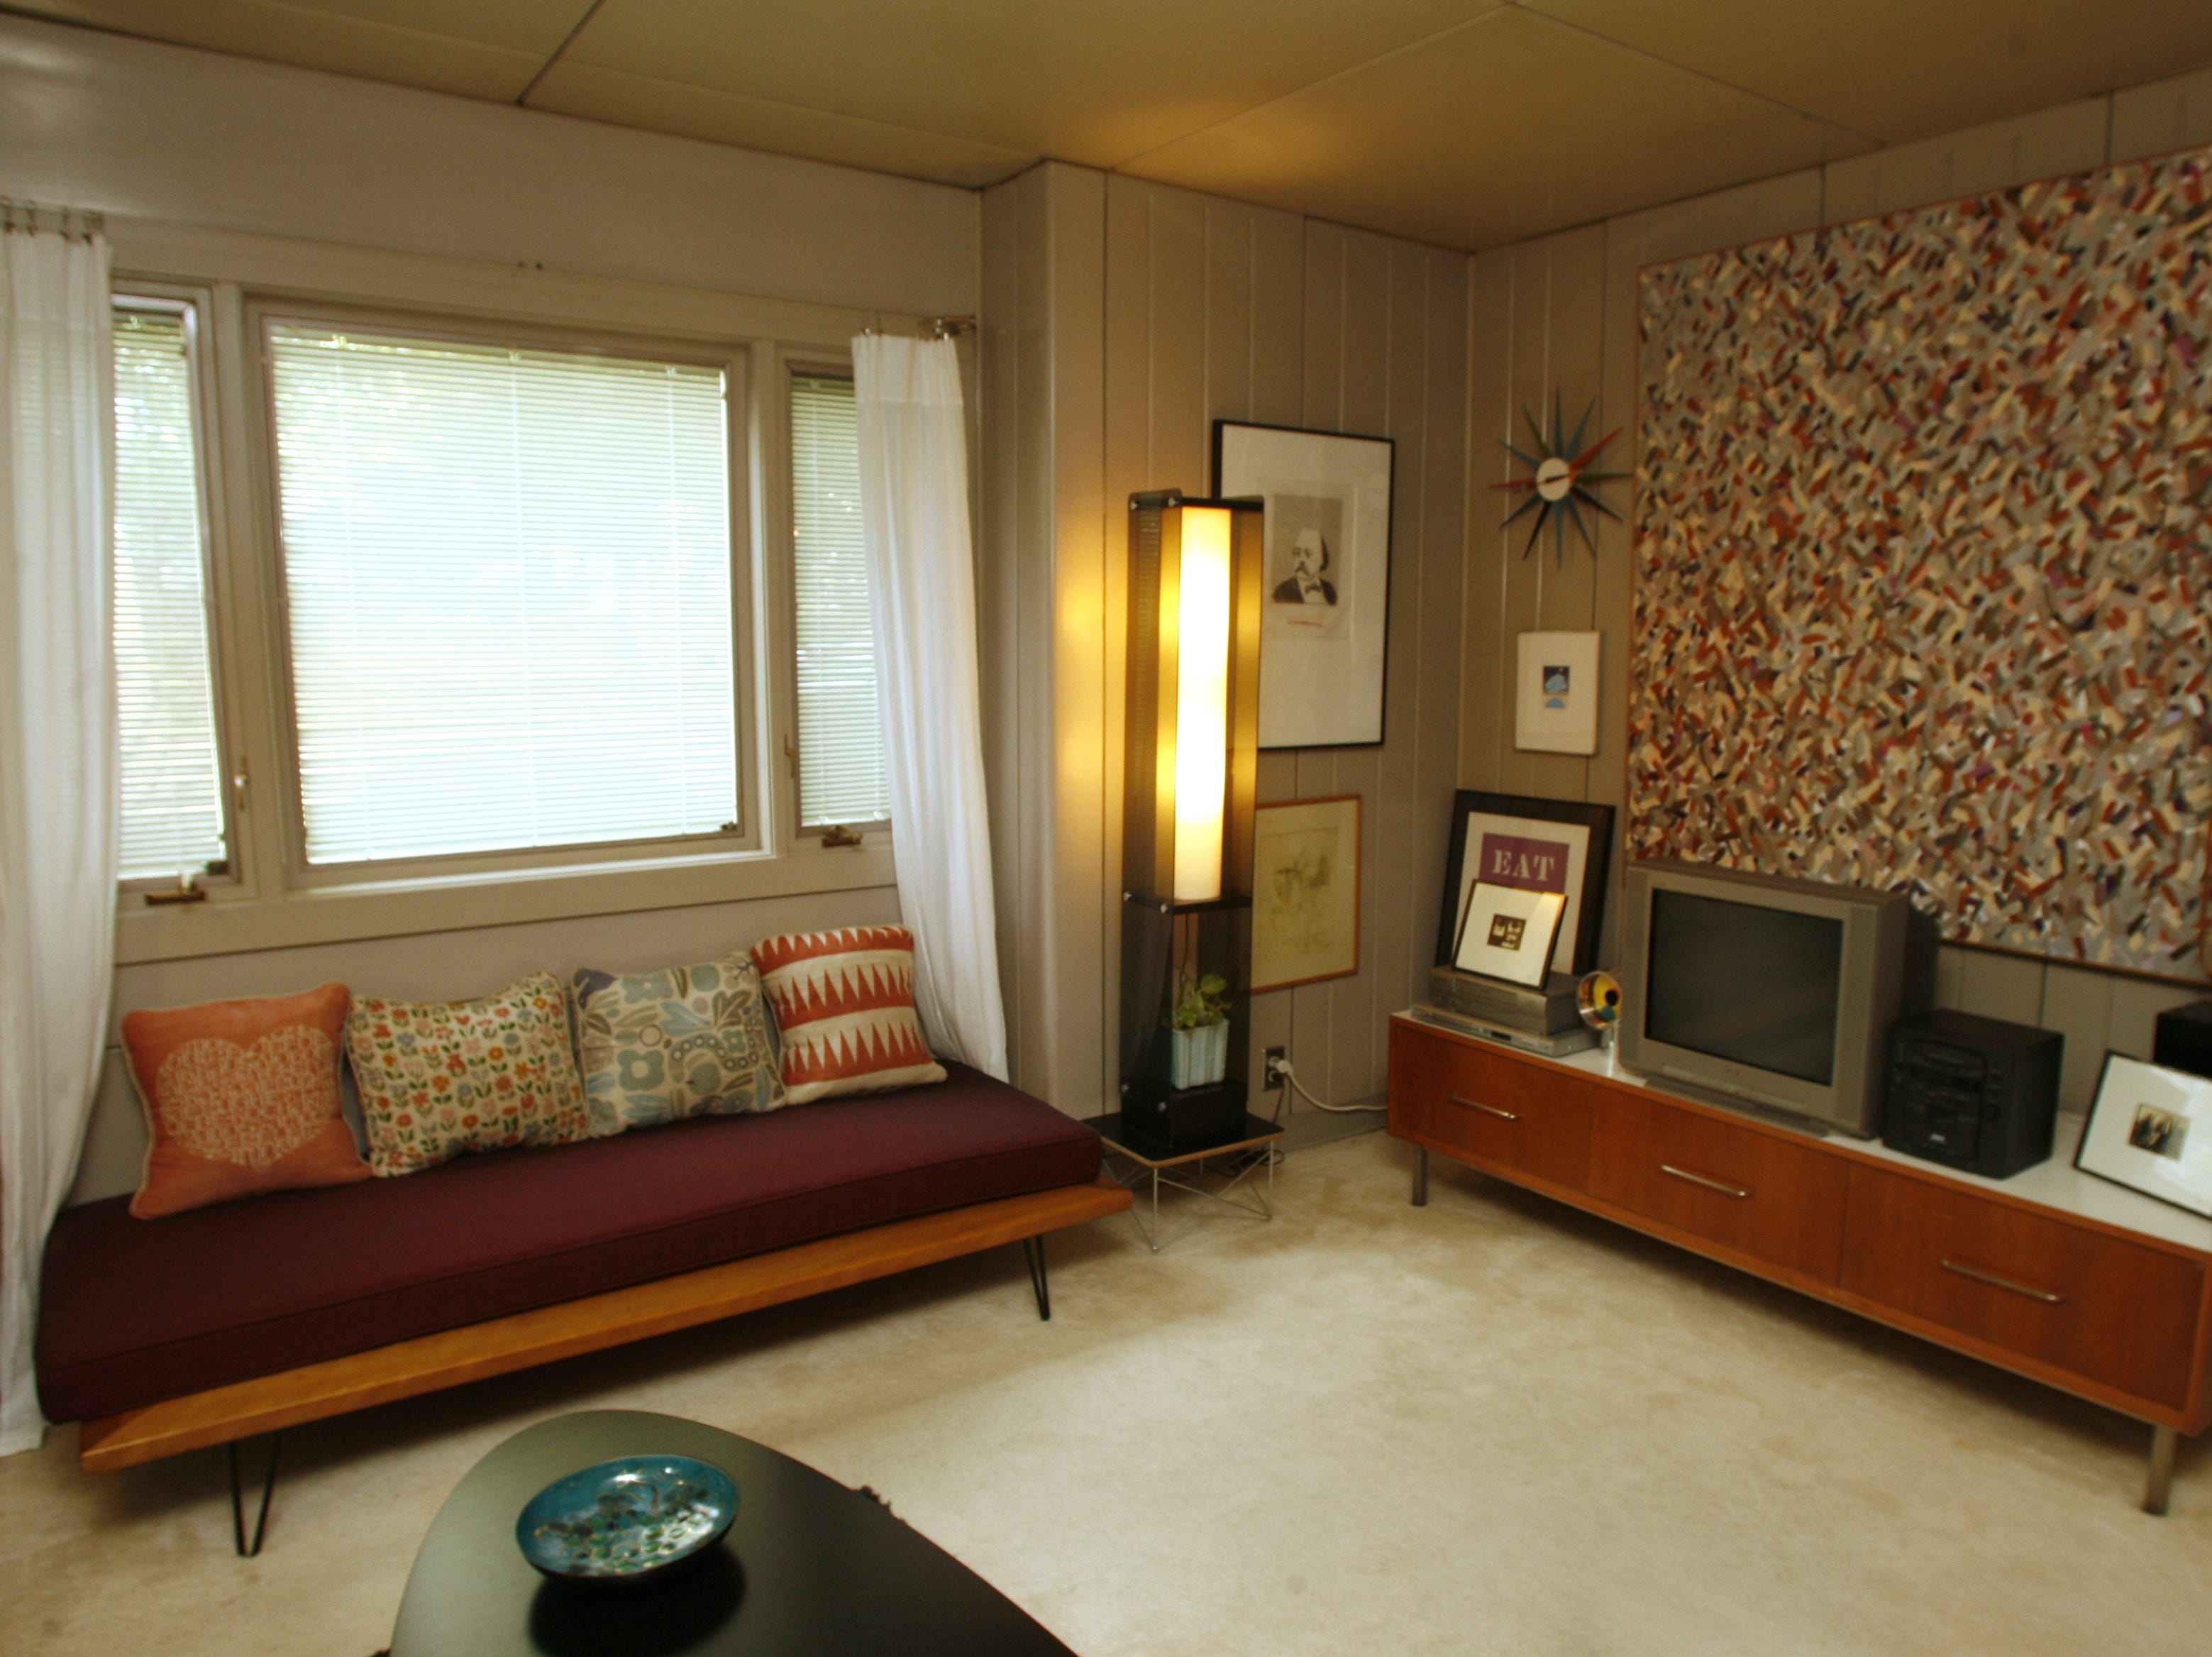 The living room of Stephanie O'Neal and Michael O'Neal's Lustron home.  Des Moines has 15 Lustron homes concentrated on the west side of the city.